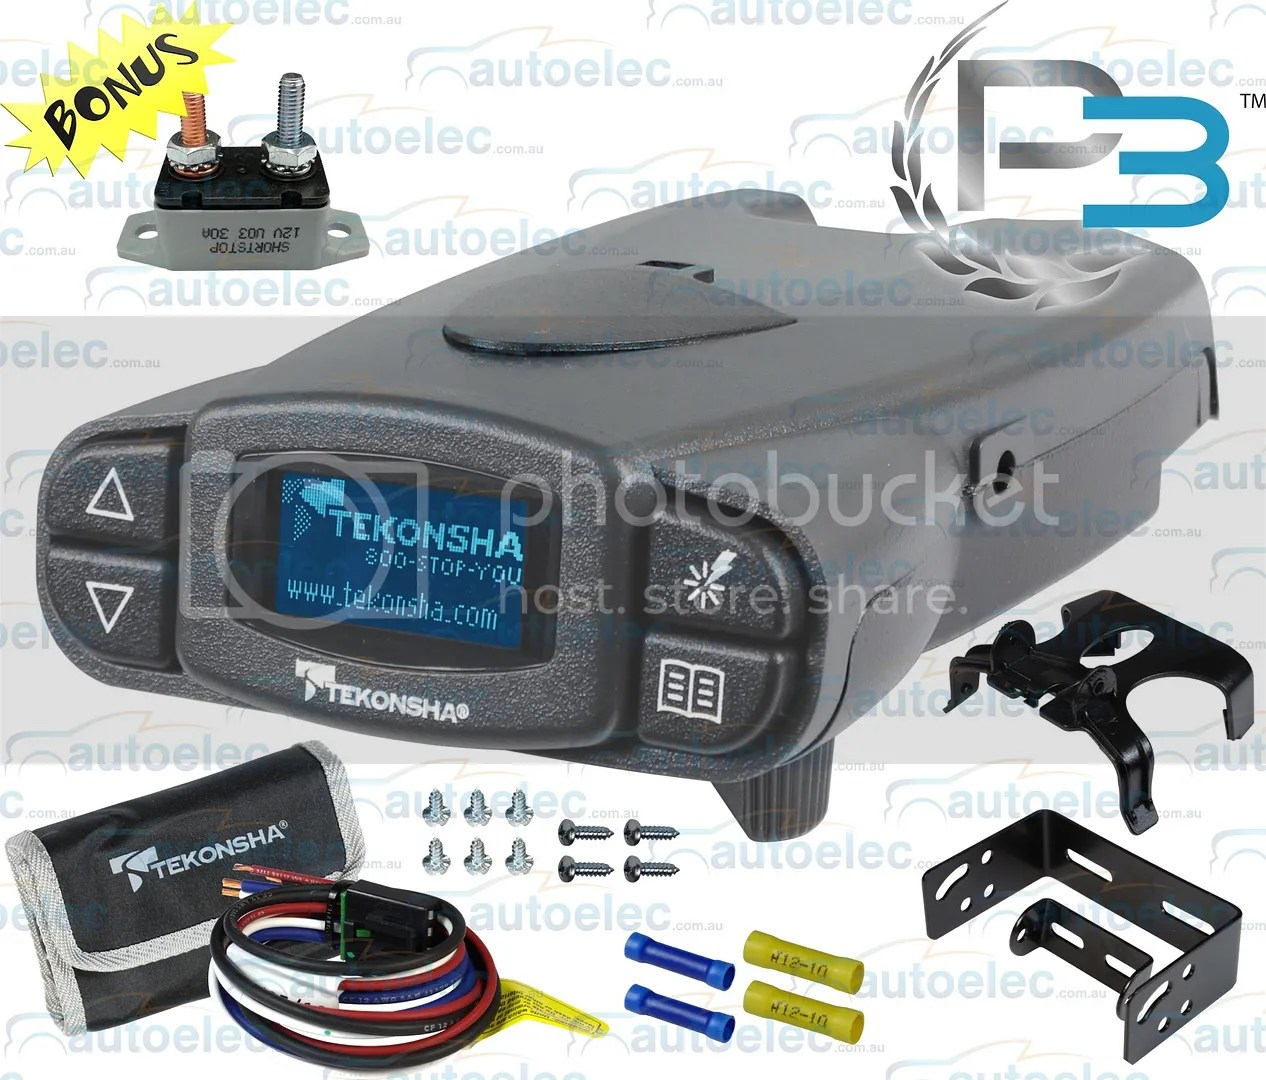 1999 toyota 4runner brake controller wiring diagram 2005 chrysler sebring 2 7 engine 2015 tundra prodigy p2 autos post